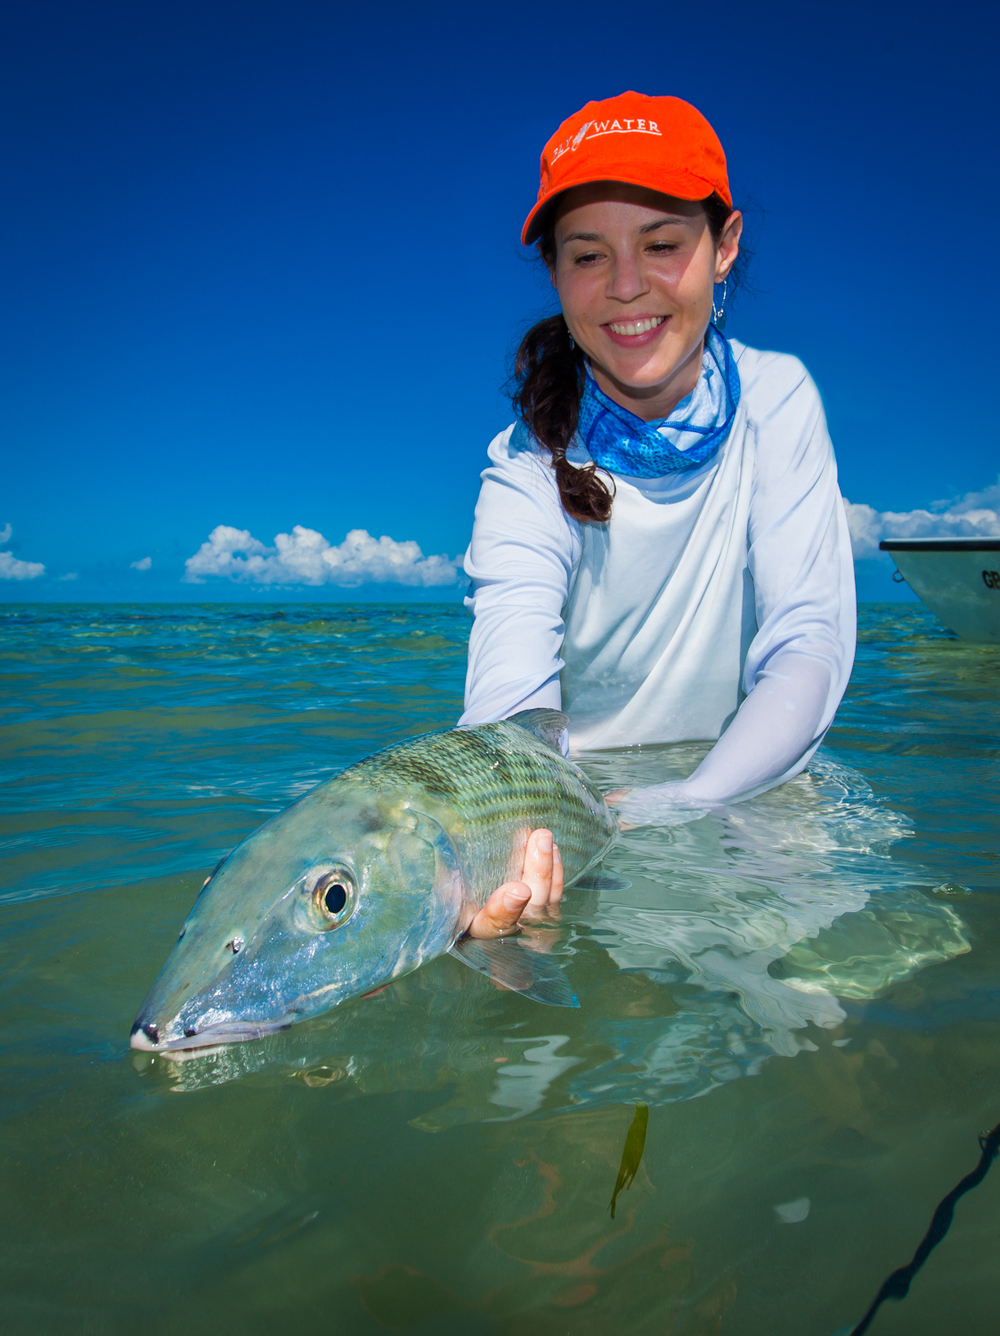 The lovely Chrysta lands large bonefish at Deep Water Cay. 19mm f/13 1/200sec